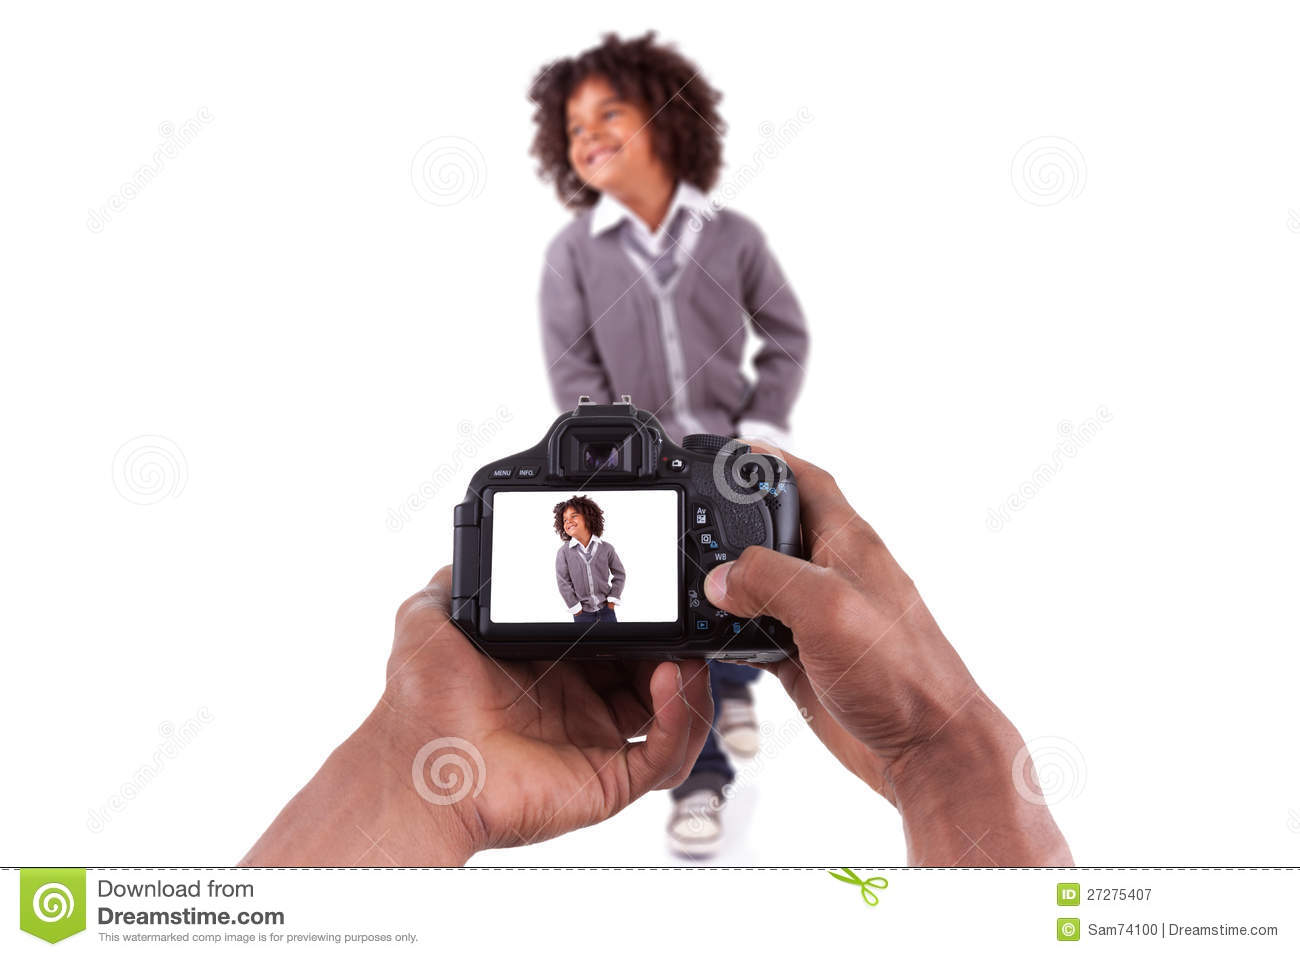 Royalty Free Stock Photography: African photographer taking studio ...: www.dreamstime.com/royalty-free-stock-photography-african...